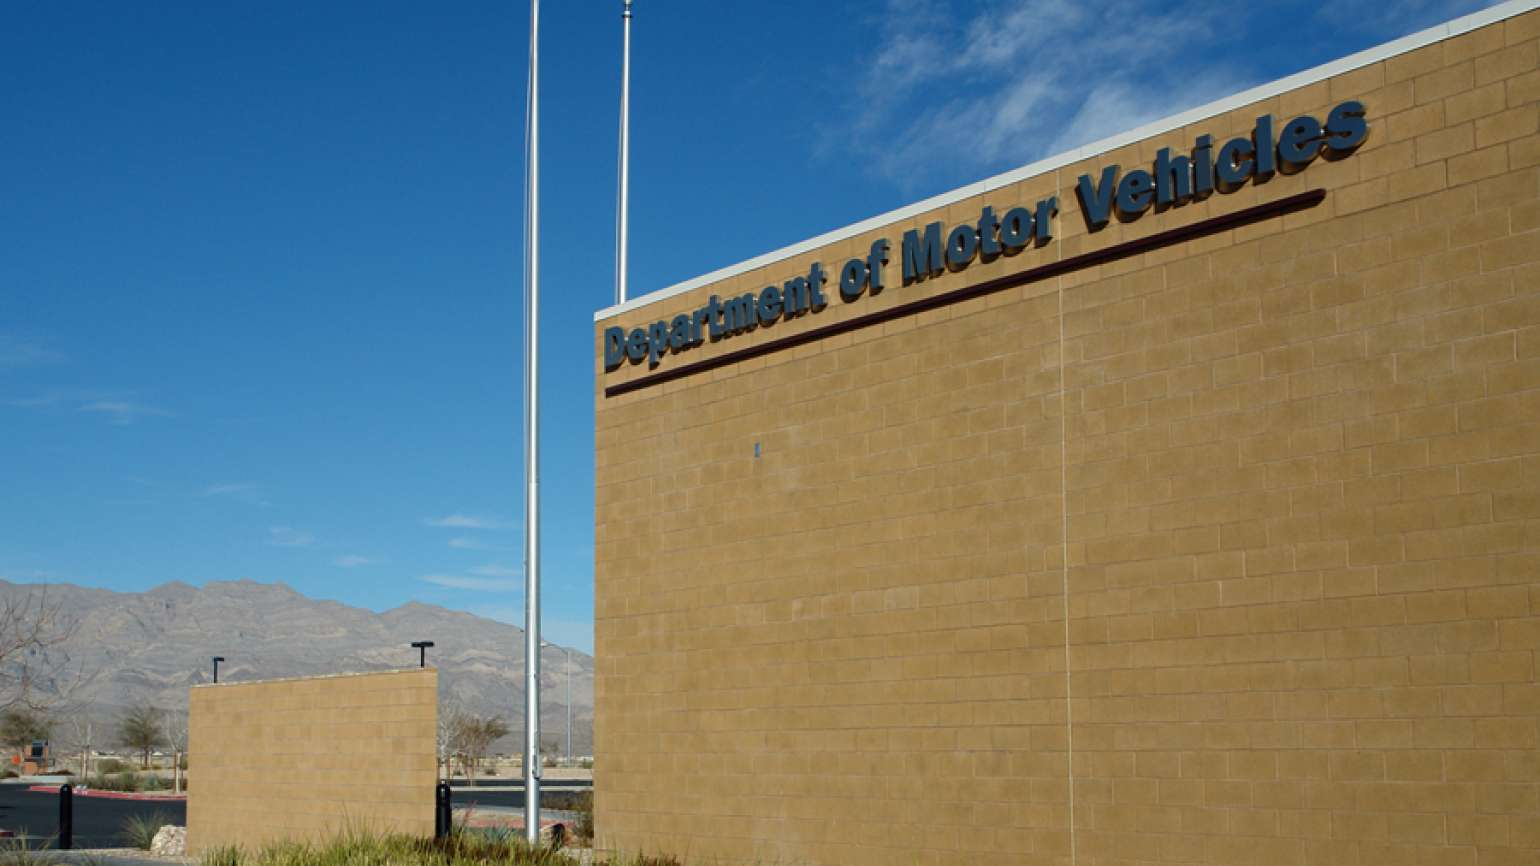 The Department of Motor Vehicles